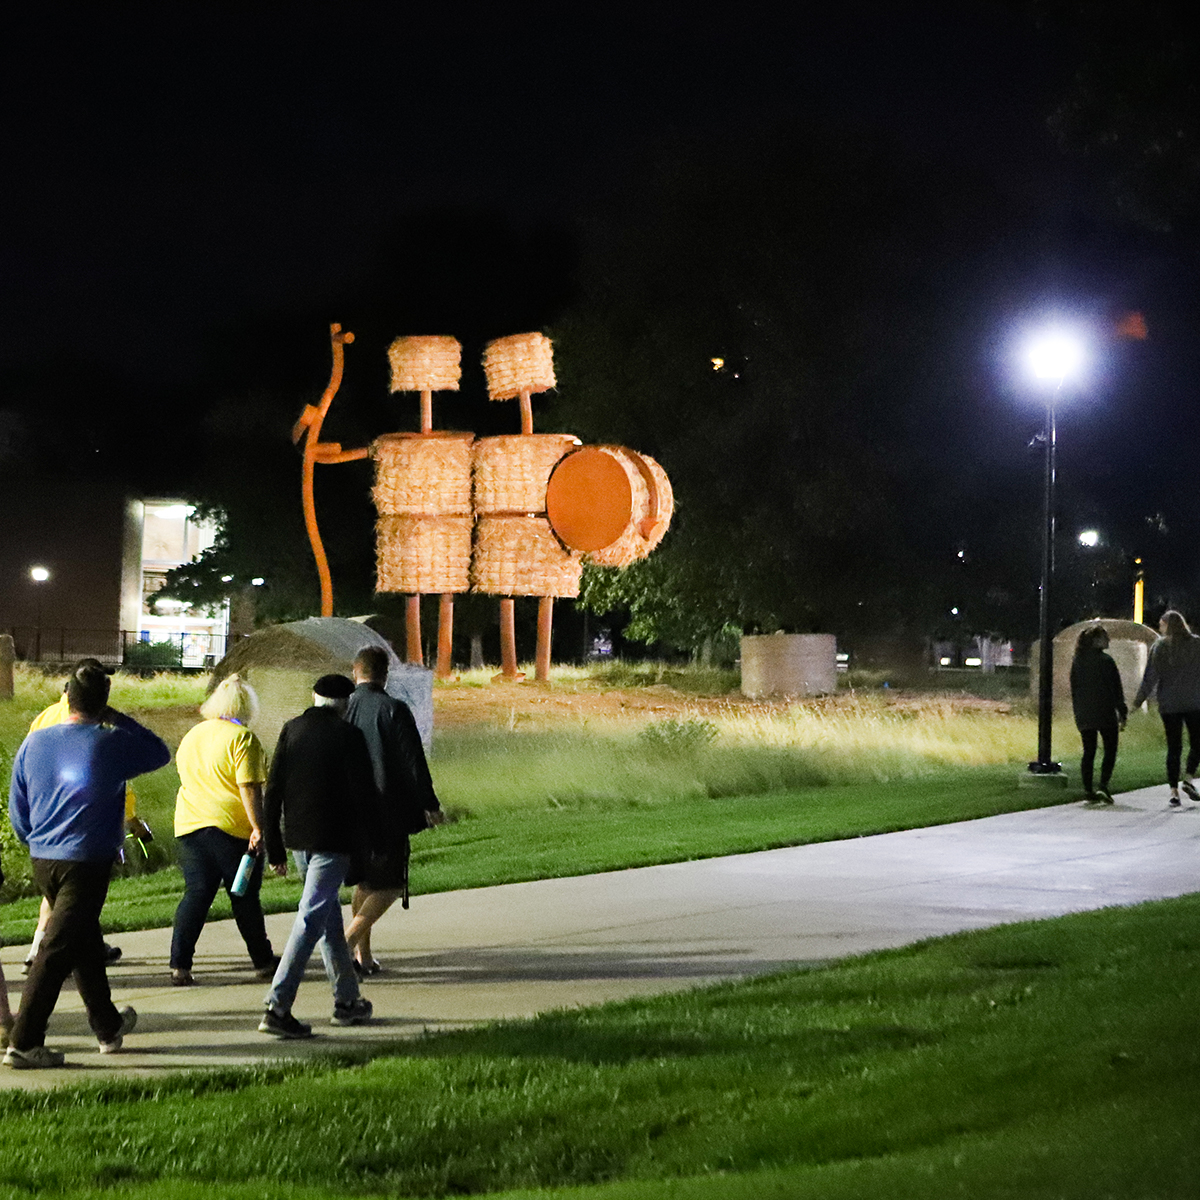 A group of people walking on the side of a road